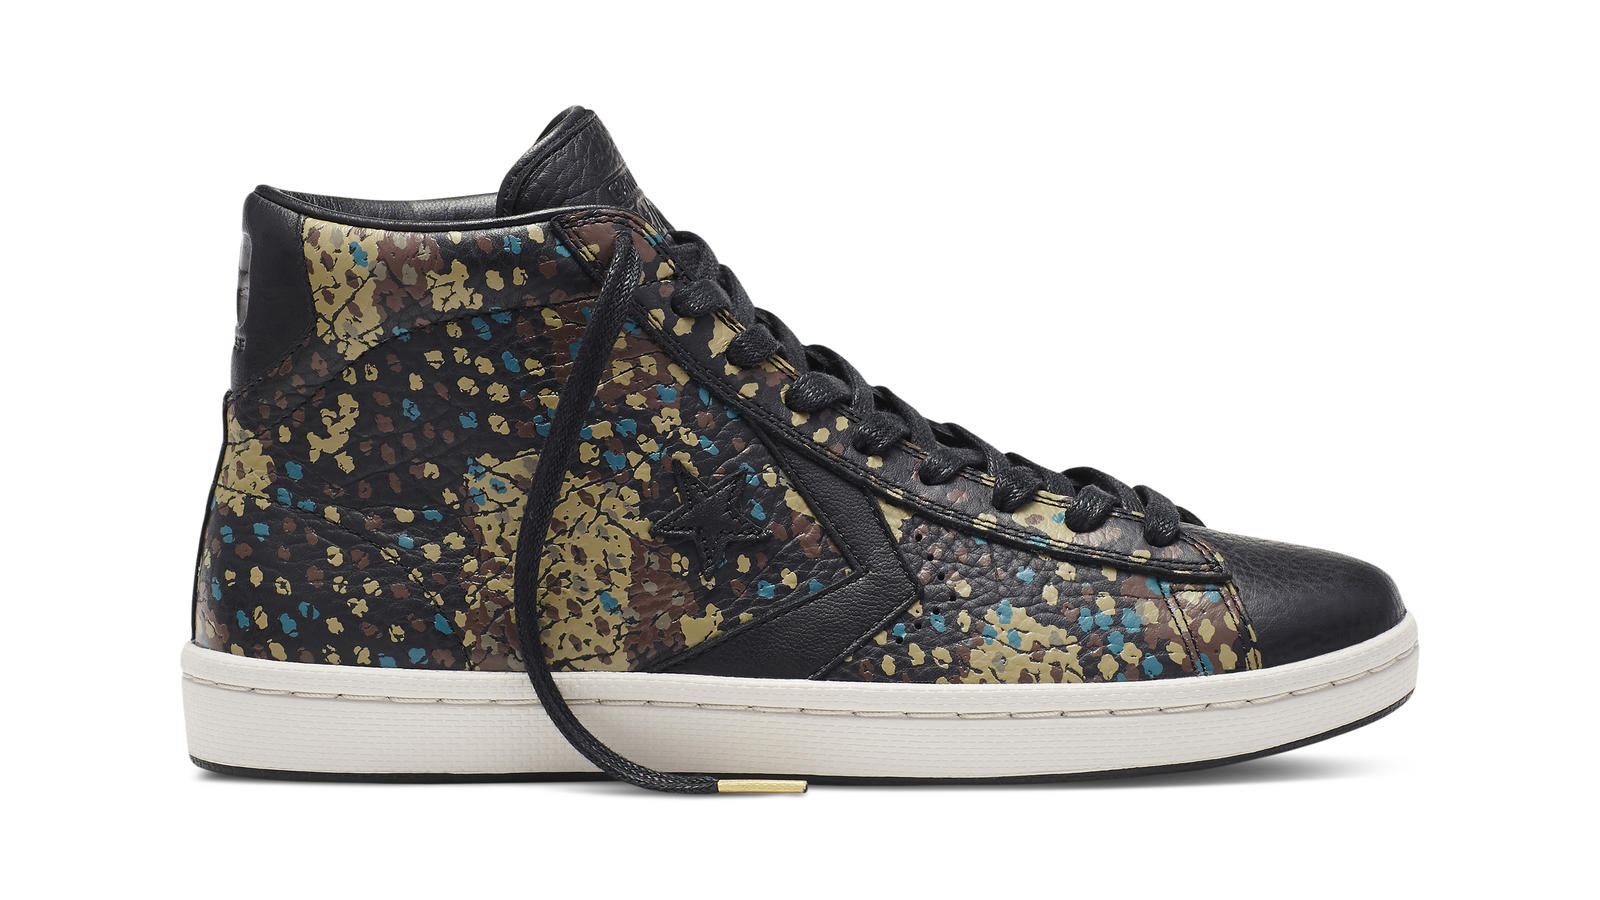 Converse Cons Pro Leather Painted Camo   Black Original